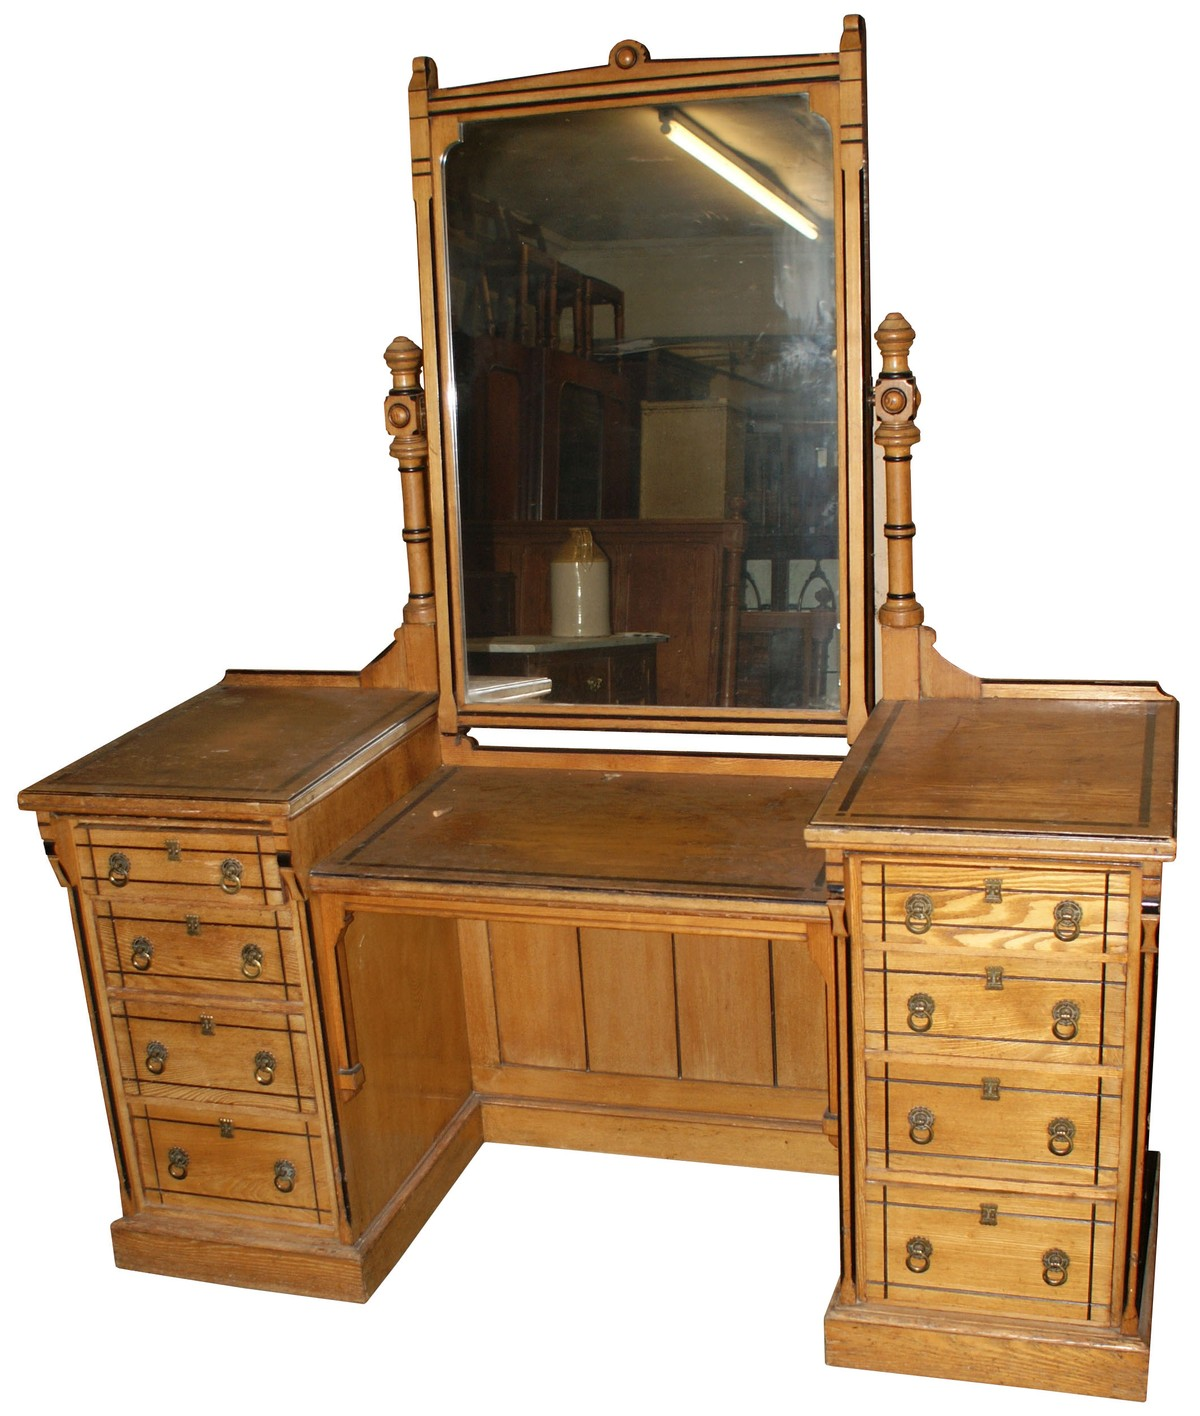 Antiques bazaar dressing tables large 3 door mirror for Dressing table